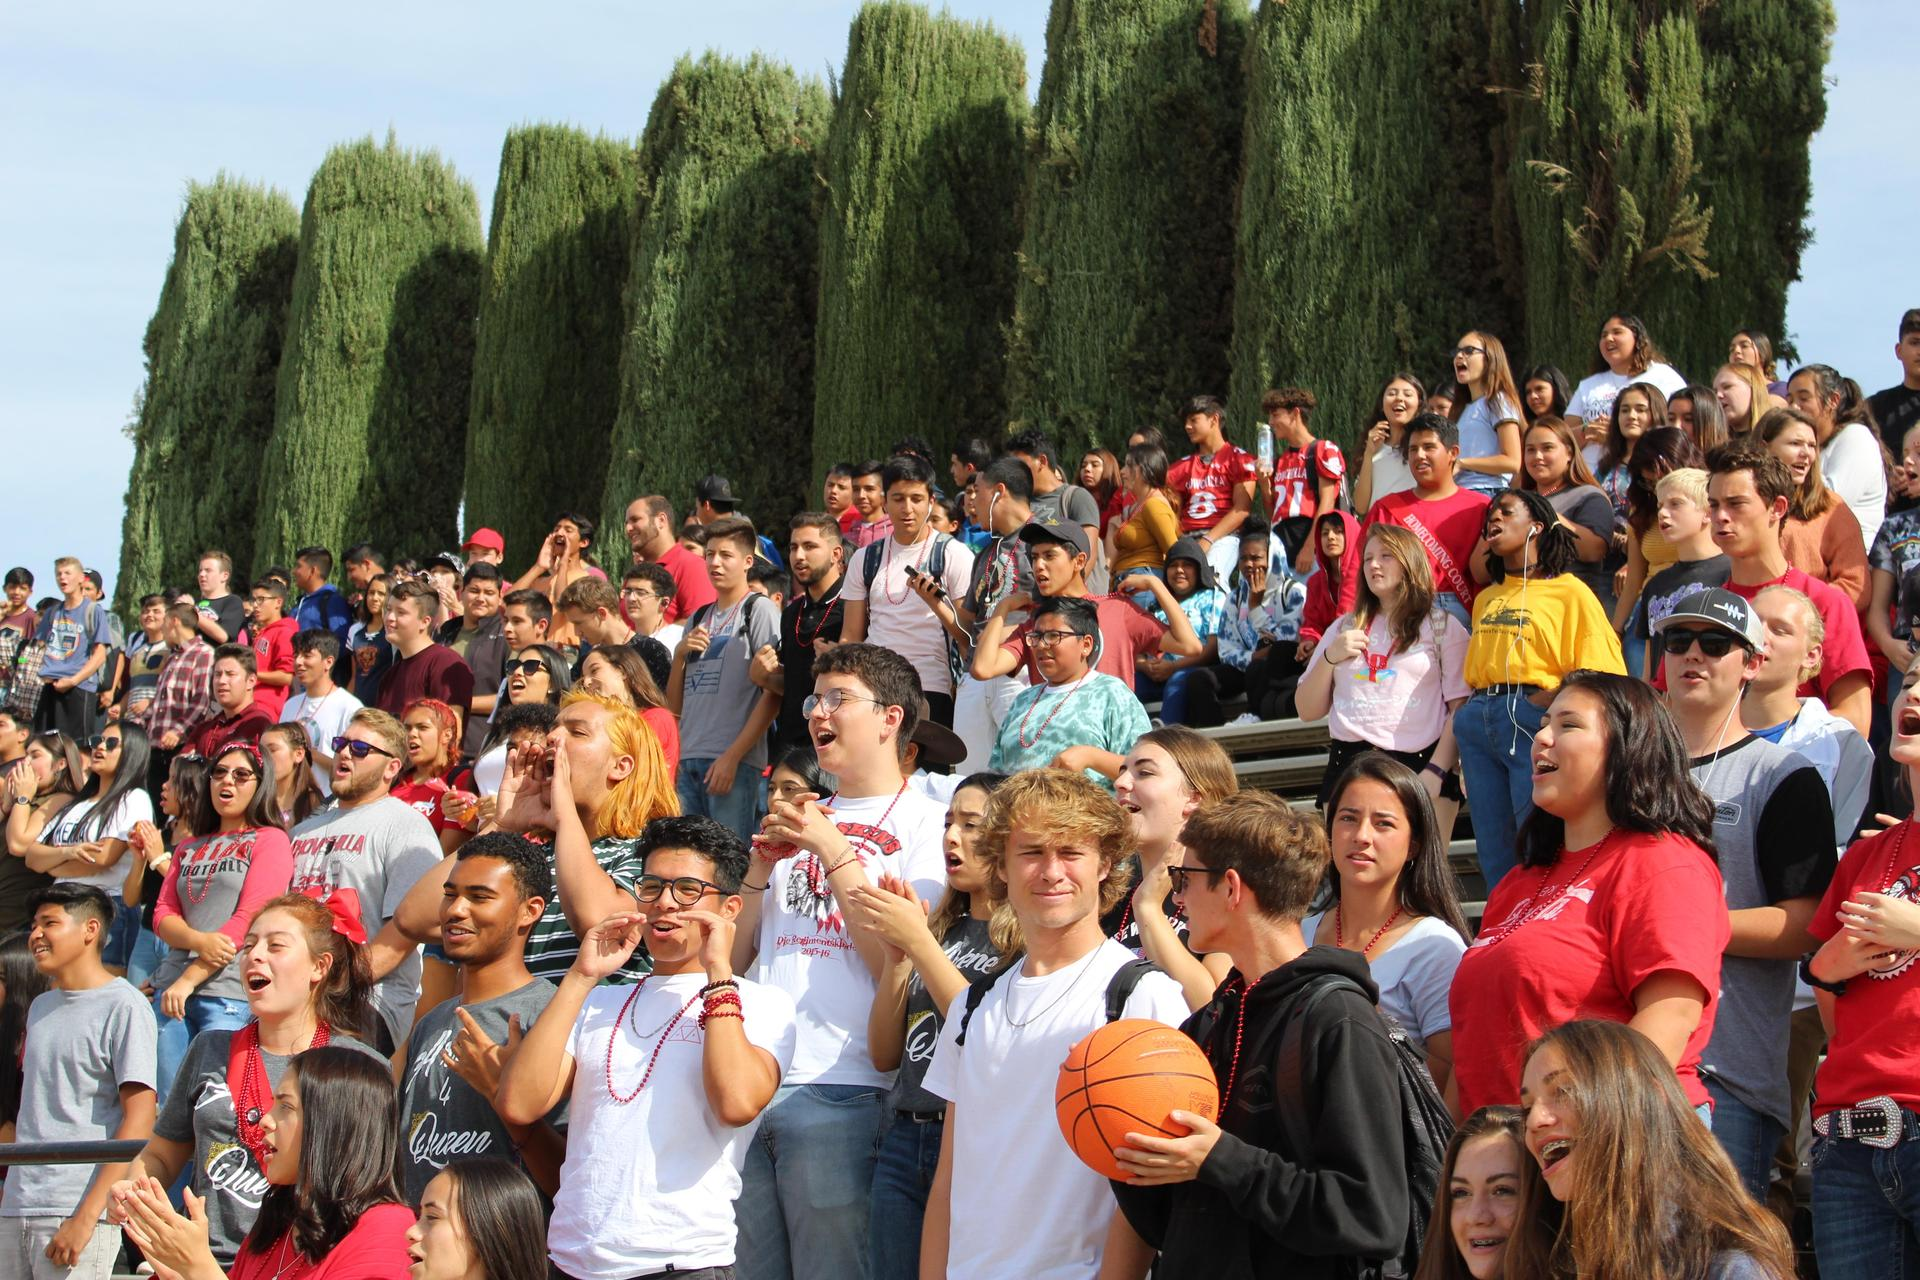 Students having fun at the Homecoming Rally